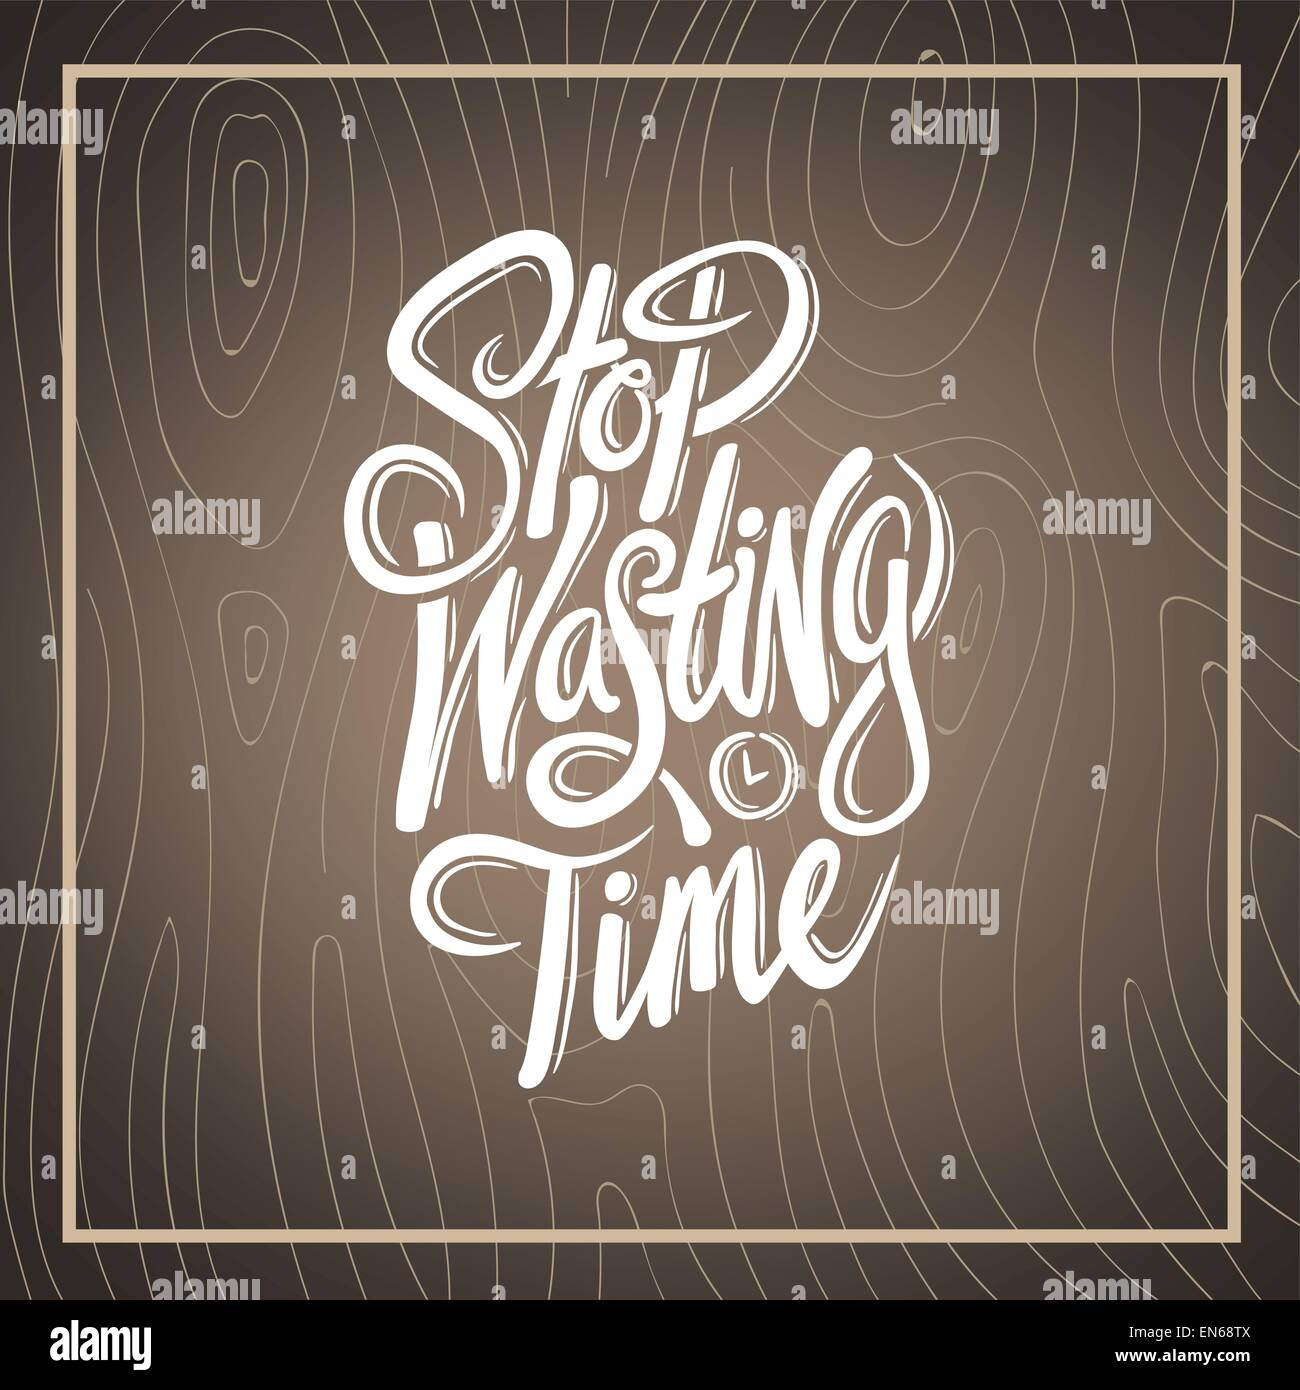 Stop wasting time vector - Stock Image